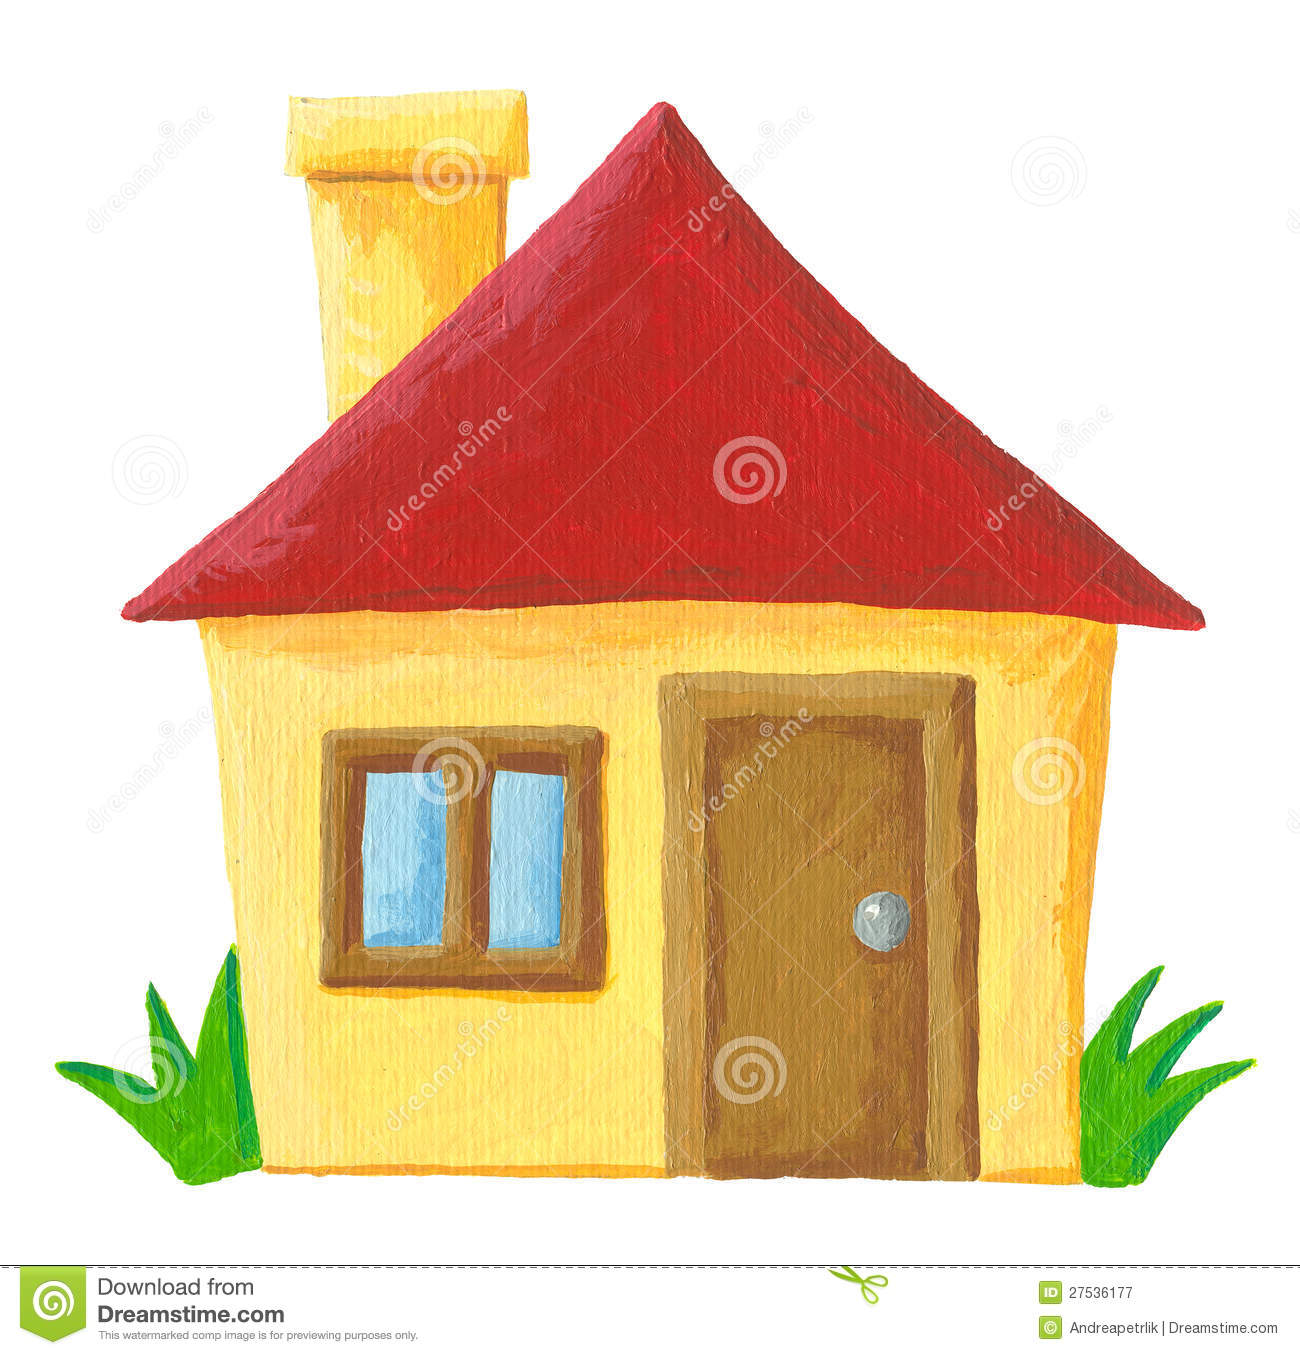 Maison simple illustration stock illustration du - Dessin de maison facile ...